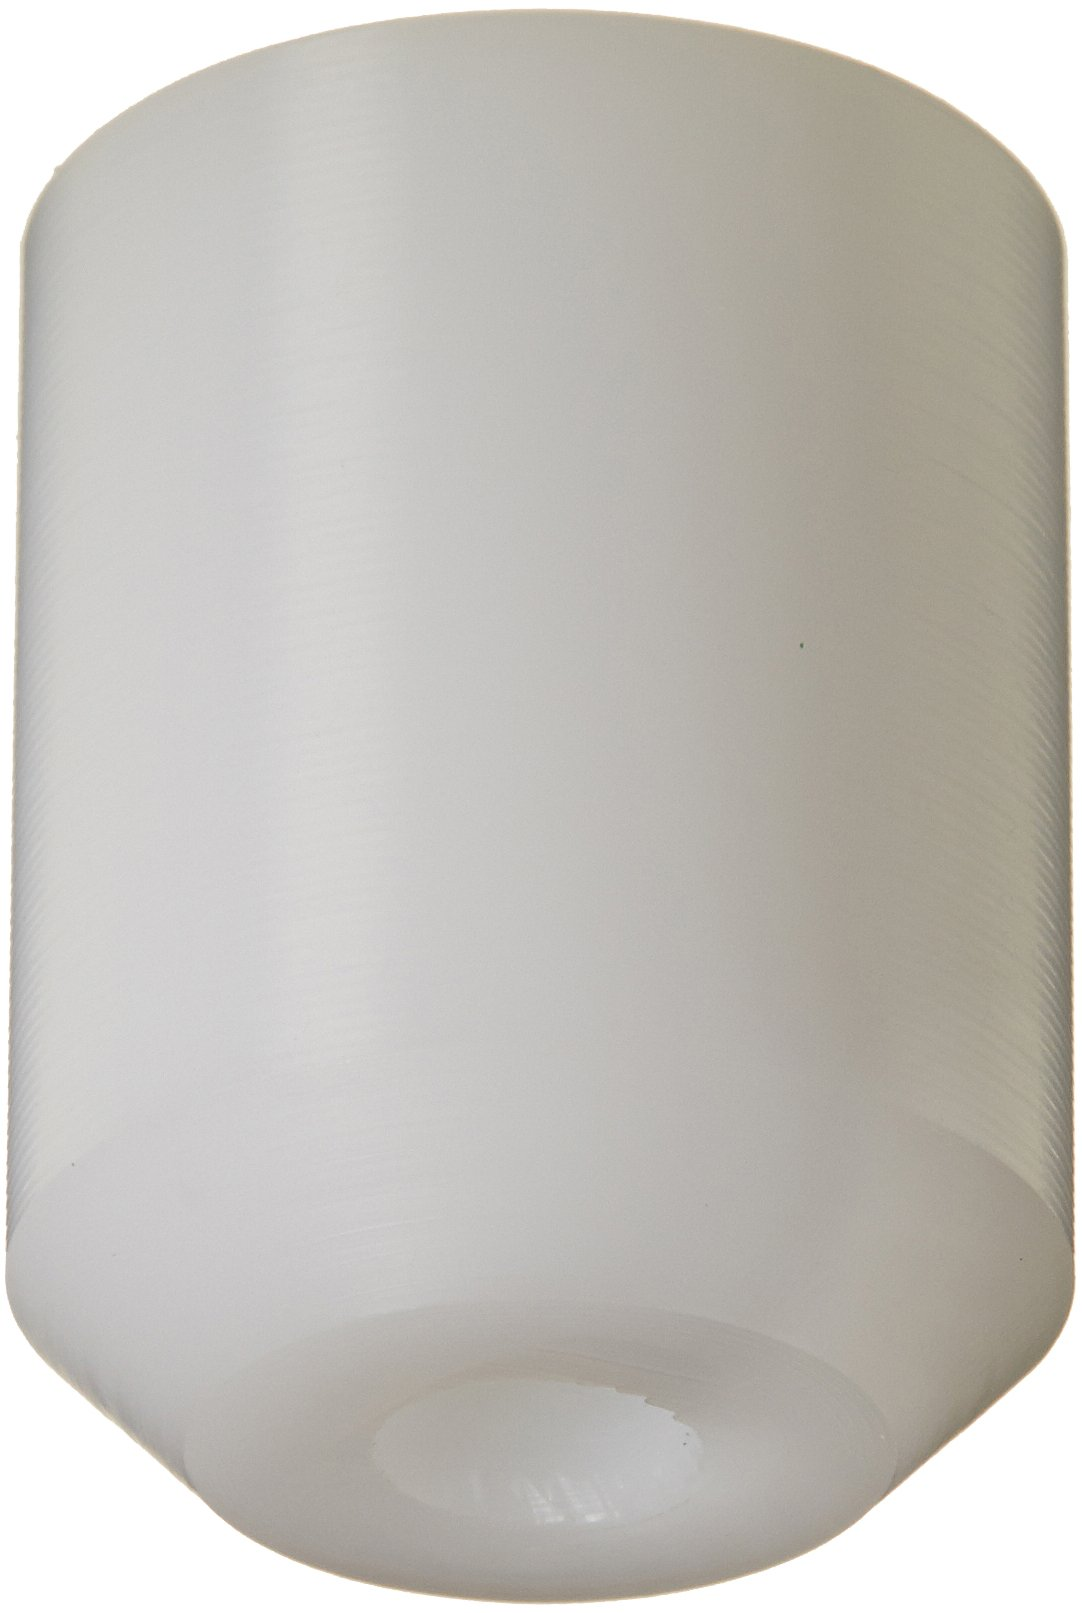 Eppendorf 022639528 Cushions for Swing-Bucket Rotors, 8 x 15ml Conical Tubes